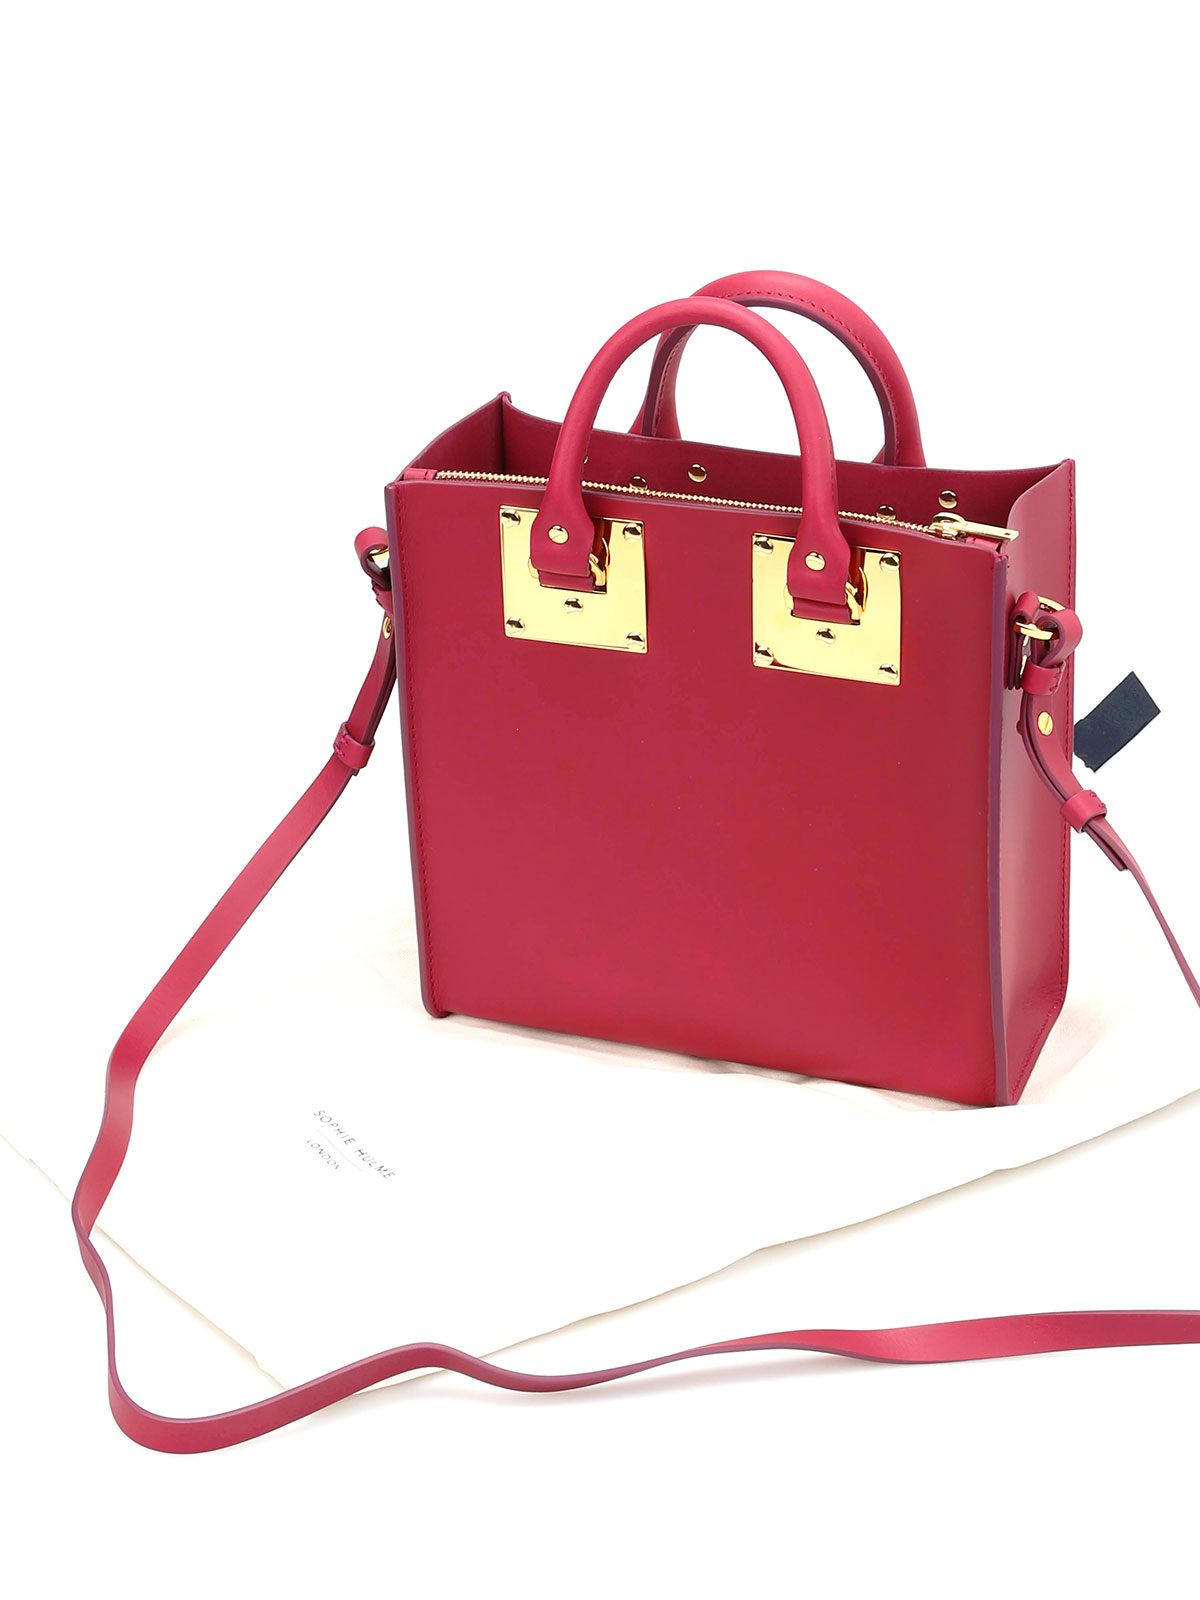 iKRIX Sophie Hulme  totes bags - Square Albion matte leather tote be5eca493ba04